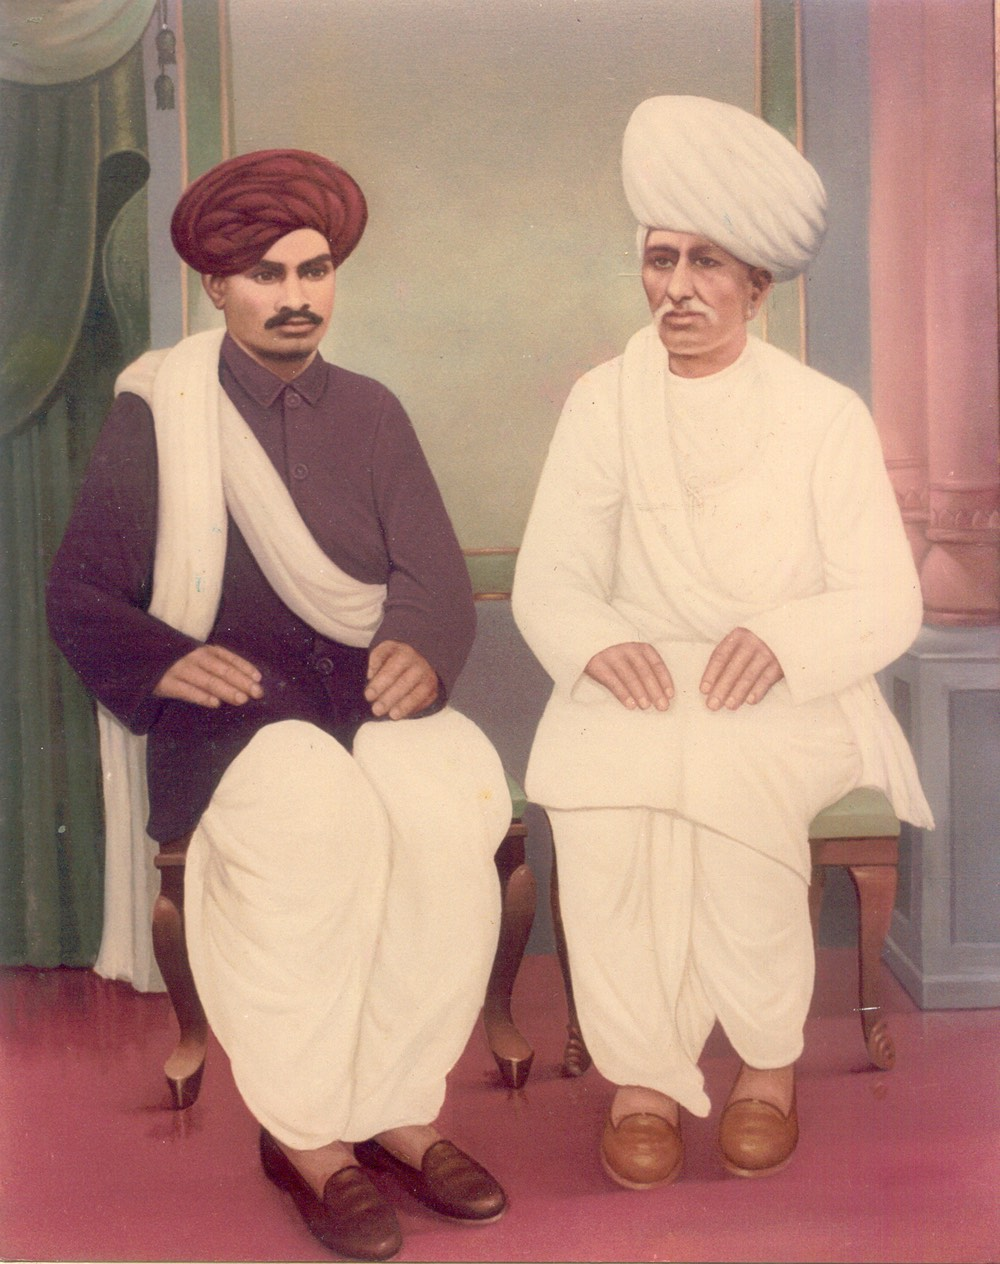 Shrimad Rajchandra and Shree Saubhagbhai